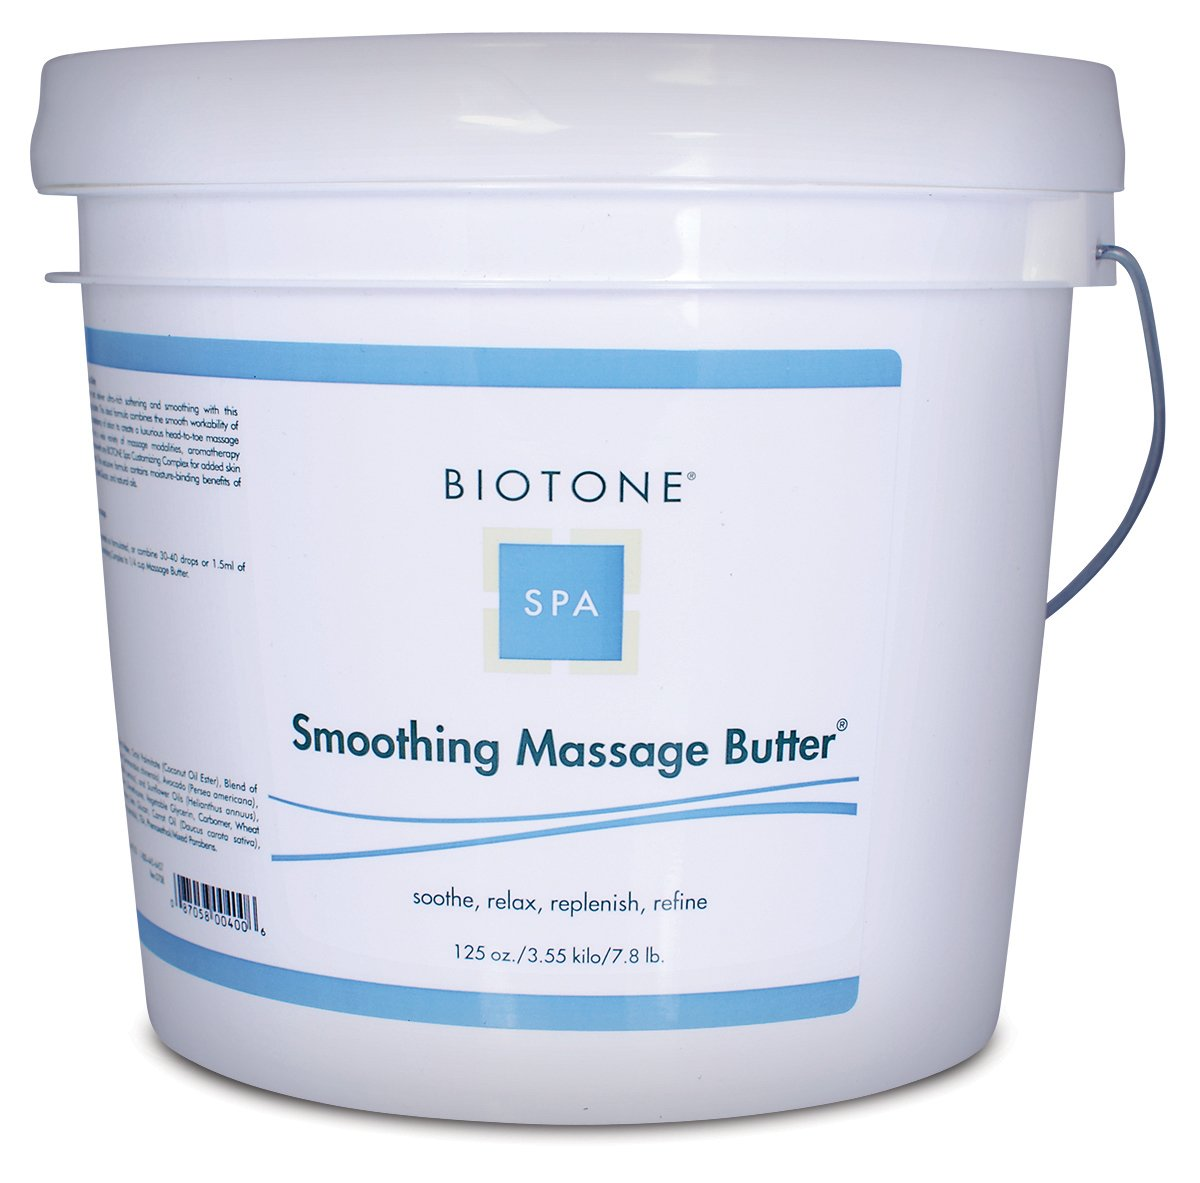 Biotone Smoothing Mass Butter, 124.8 Ounce